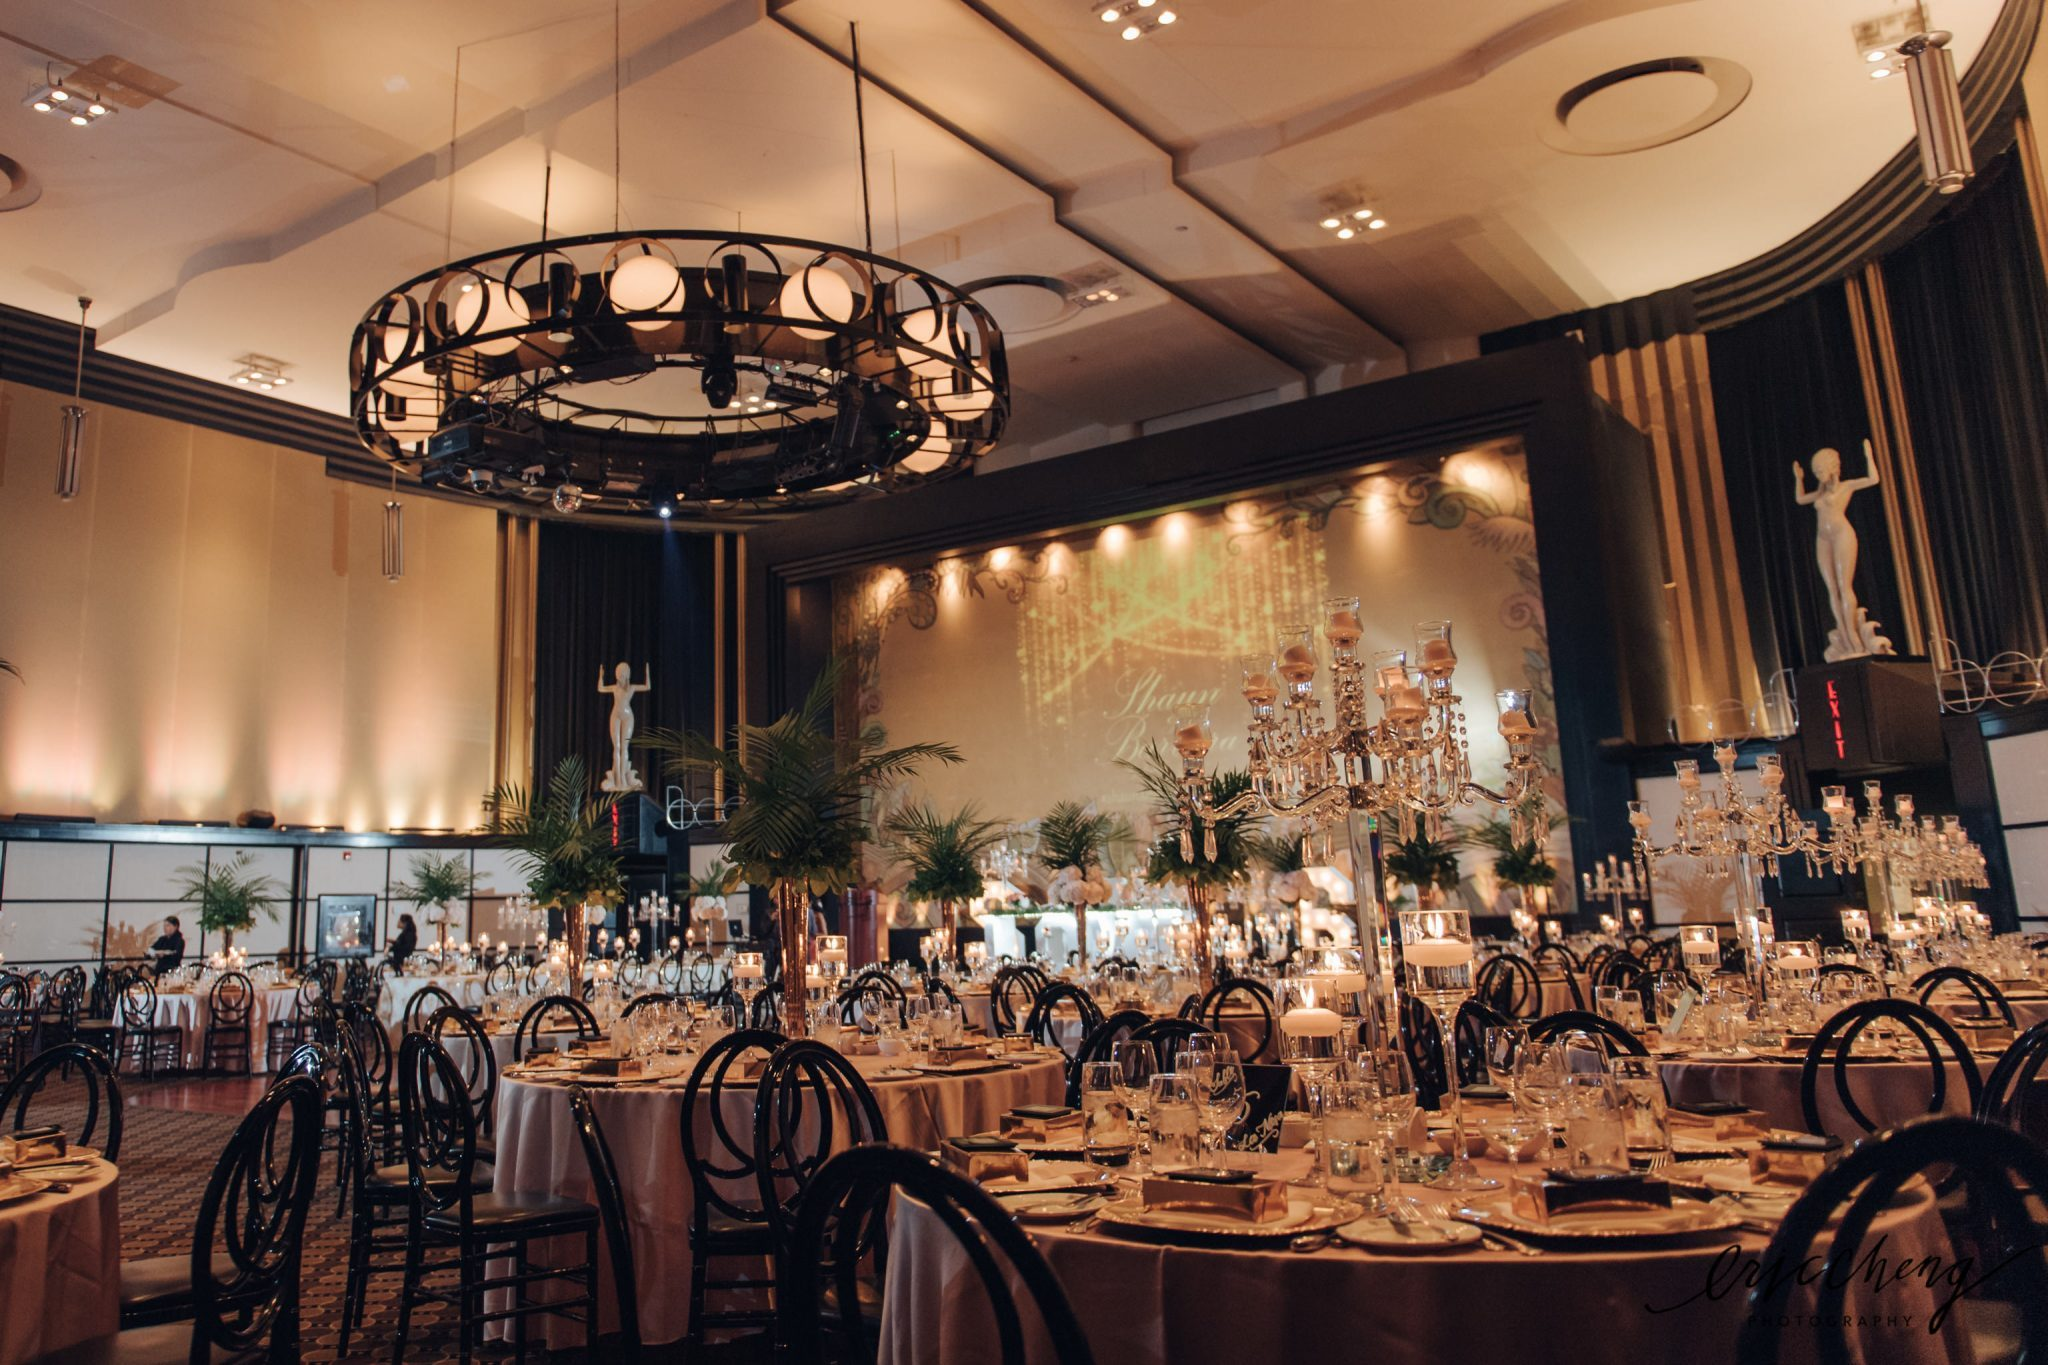 The-Top-20-Corporate-Event-Venues-in-Toronto-13